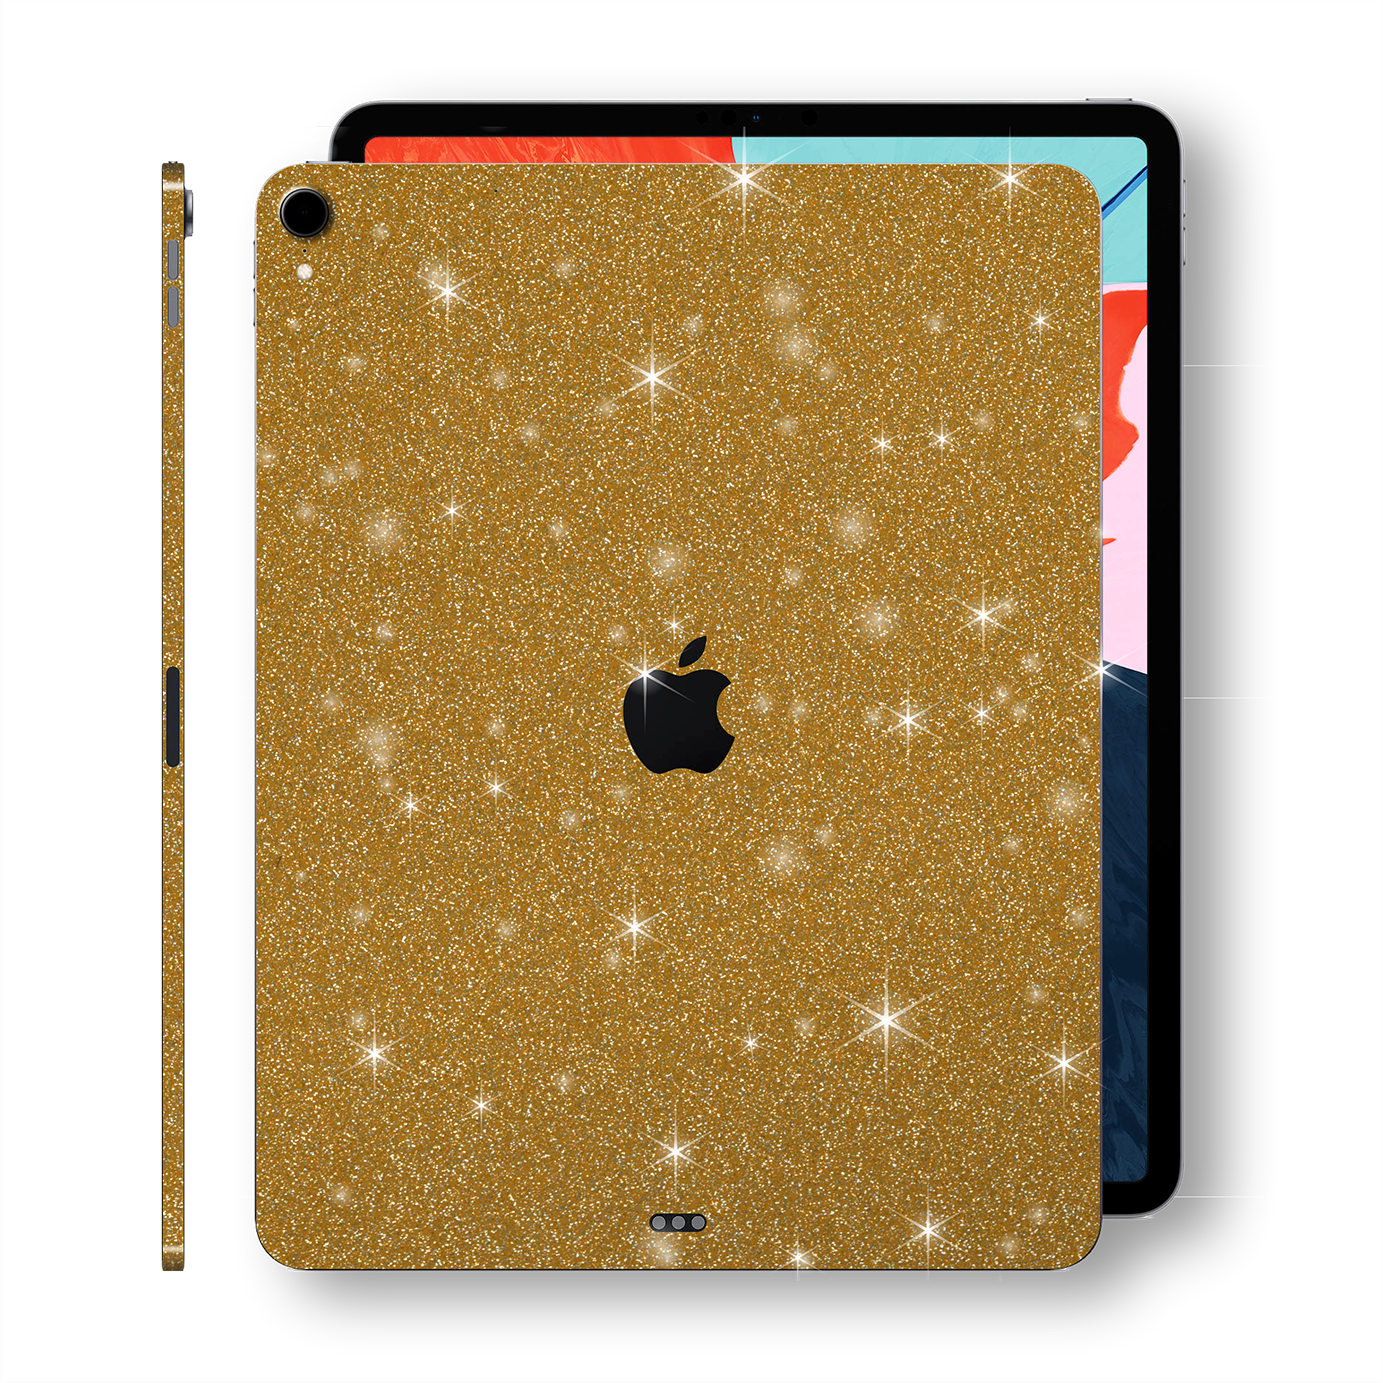 "iPad PRO 12.9"" inch 3rd Generation 2018 Diamond GOLD Glitter Shimmering Skin Wrap Sticker Decal Cover Protector by EasySkinz"